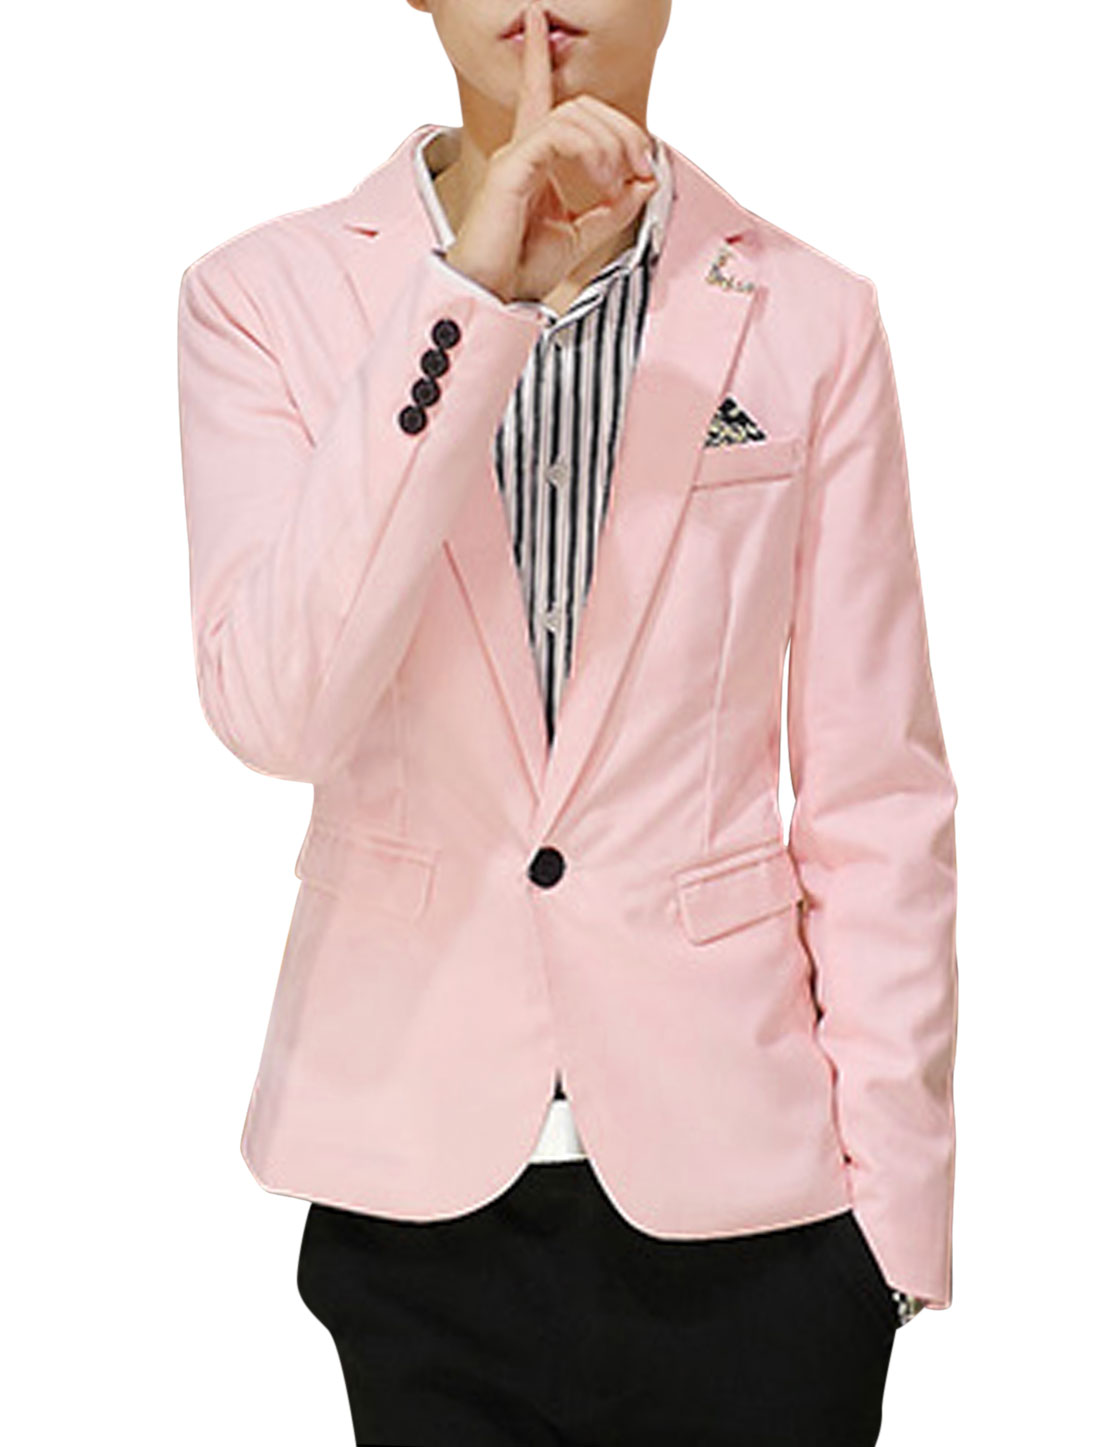 Long Sleeves Double Flap Pockets Front NEW Blazer for Men Pink M